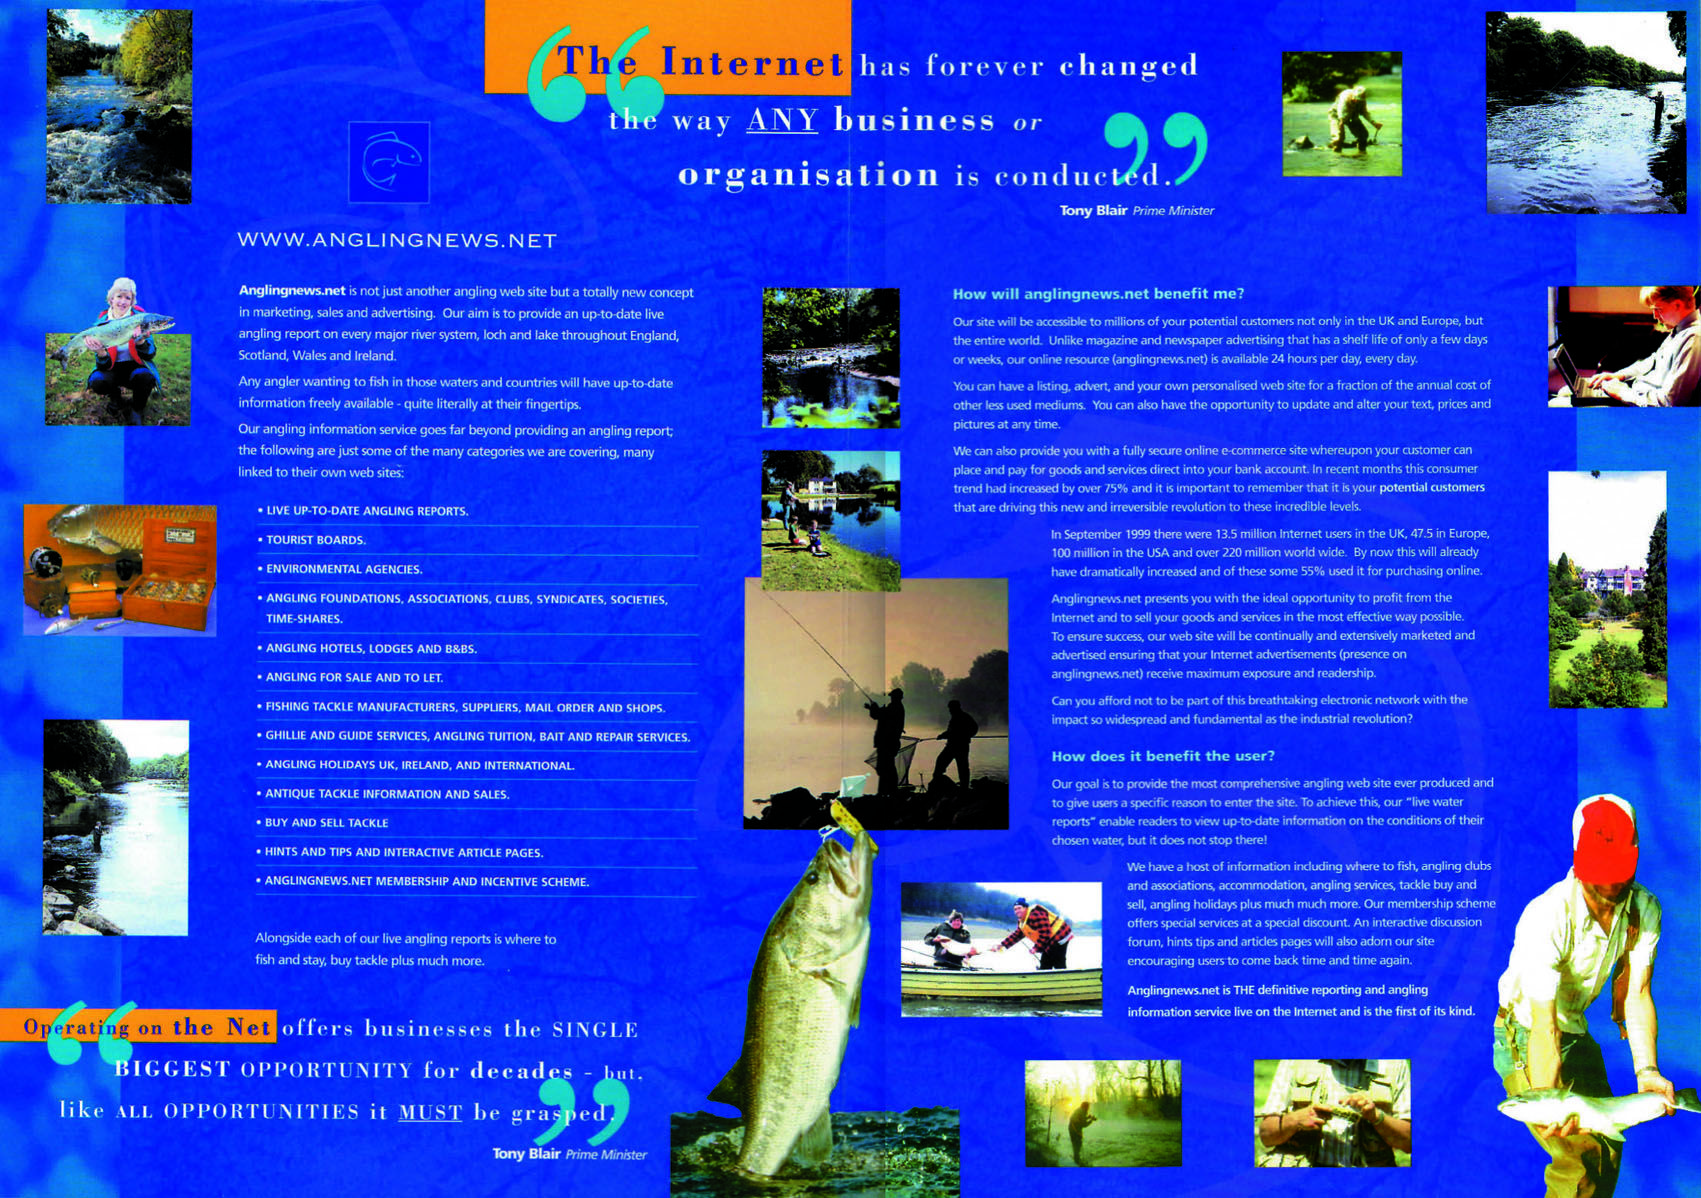 Angling News Brochure Interior Brochure Design Working Over